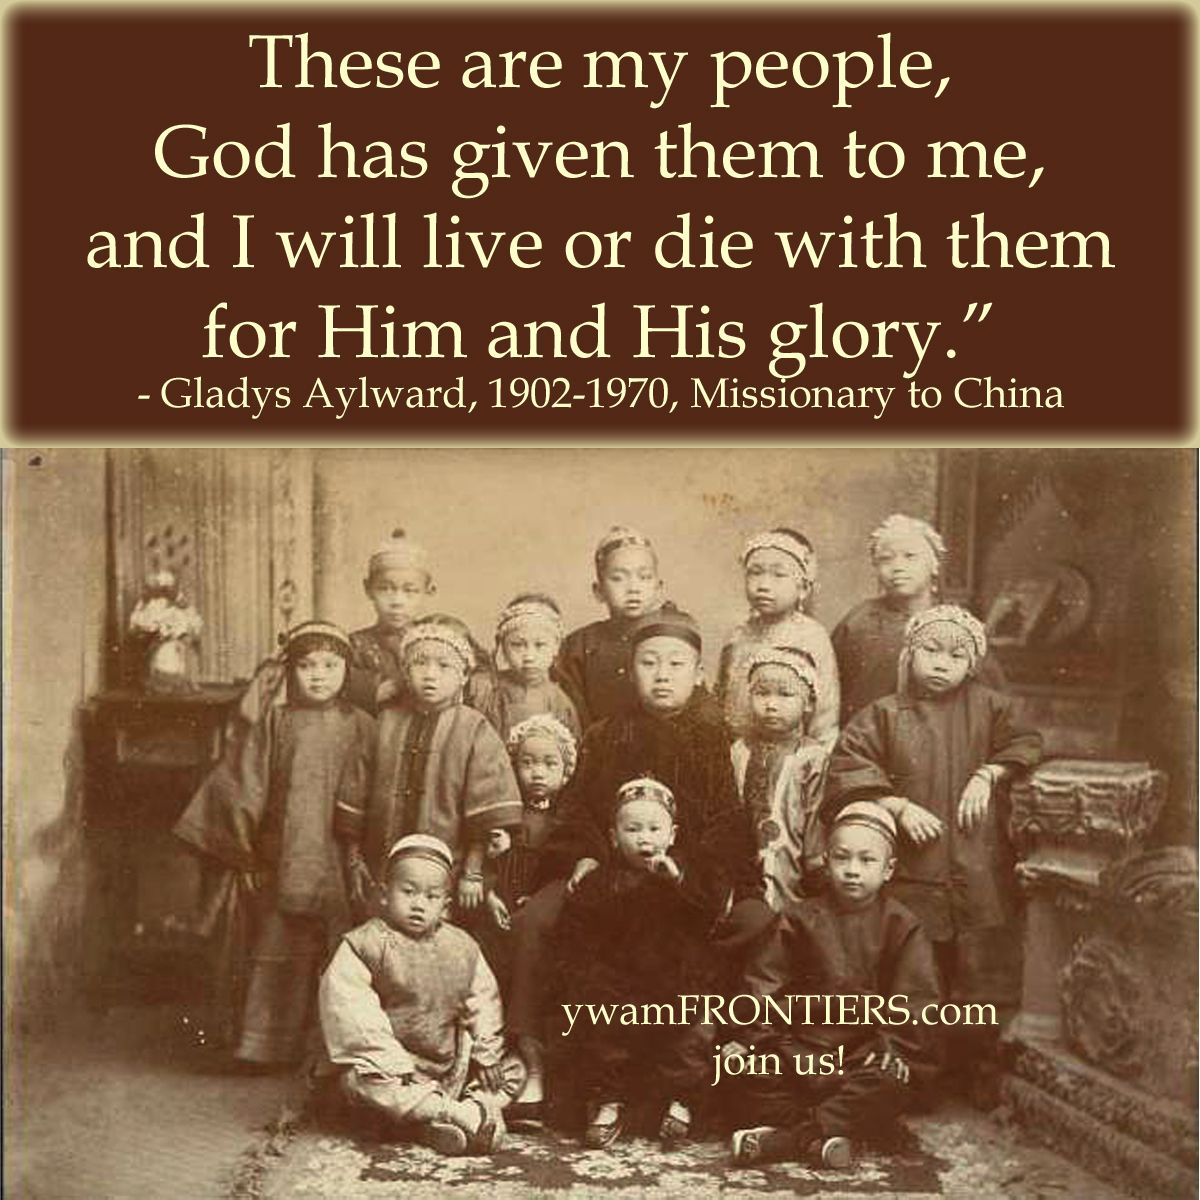 Gladys Aylward Missionary To China A Great Woman Who Dedicated